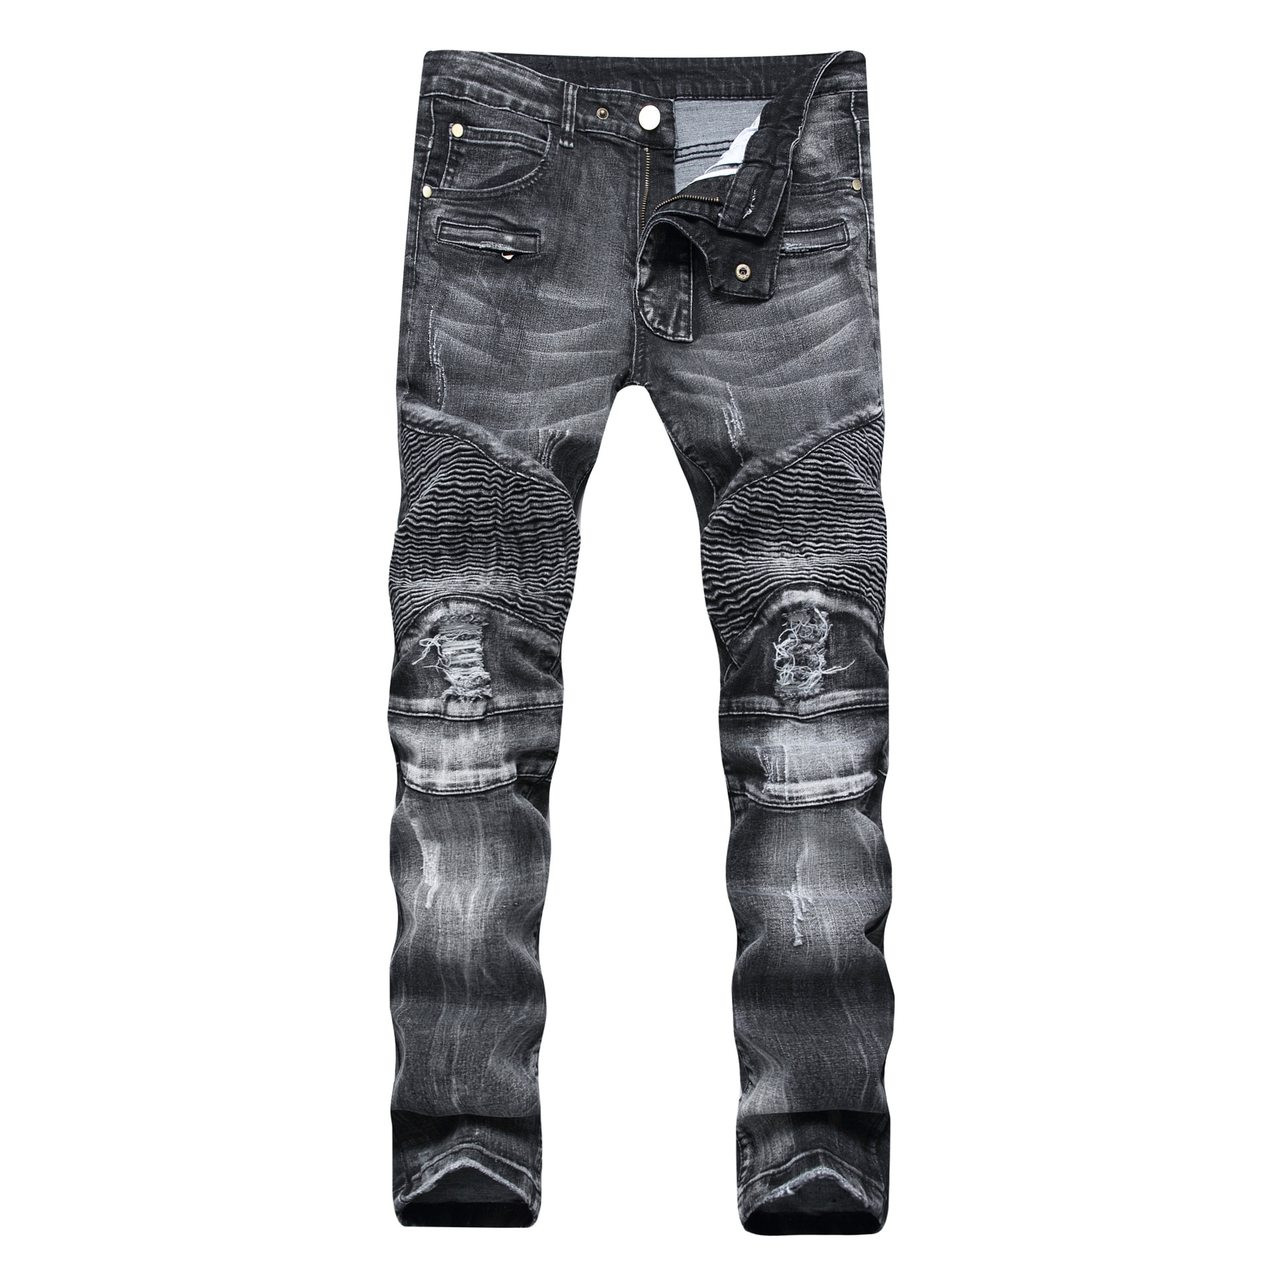 e4127a987cd High Street Hole Jeans Pants Men Fashion Casual Denim Trousers Pockets Solid  Street Wear Plus Size ...